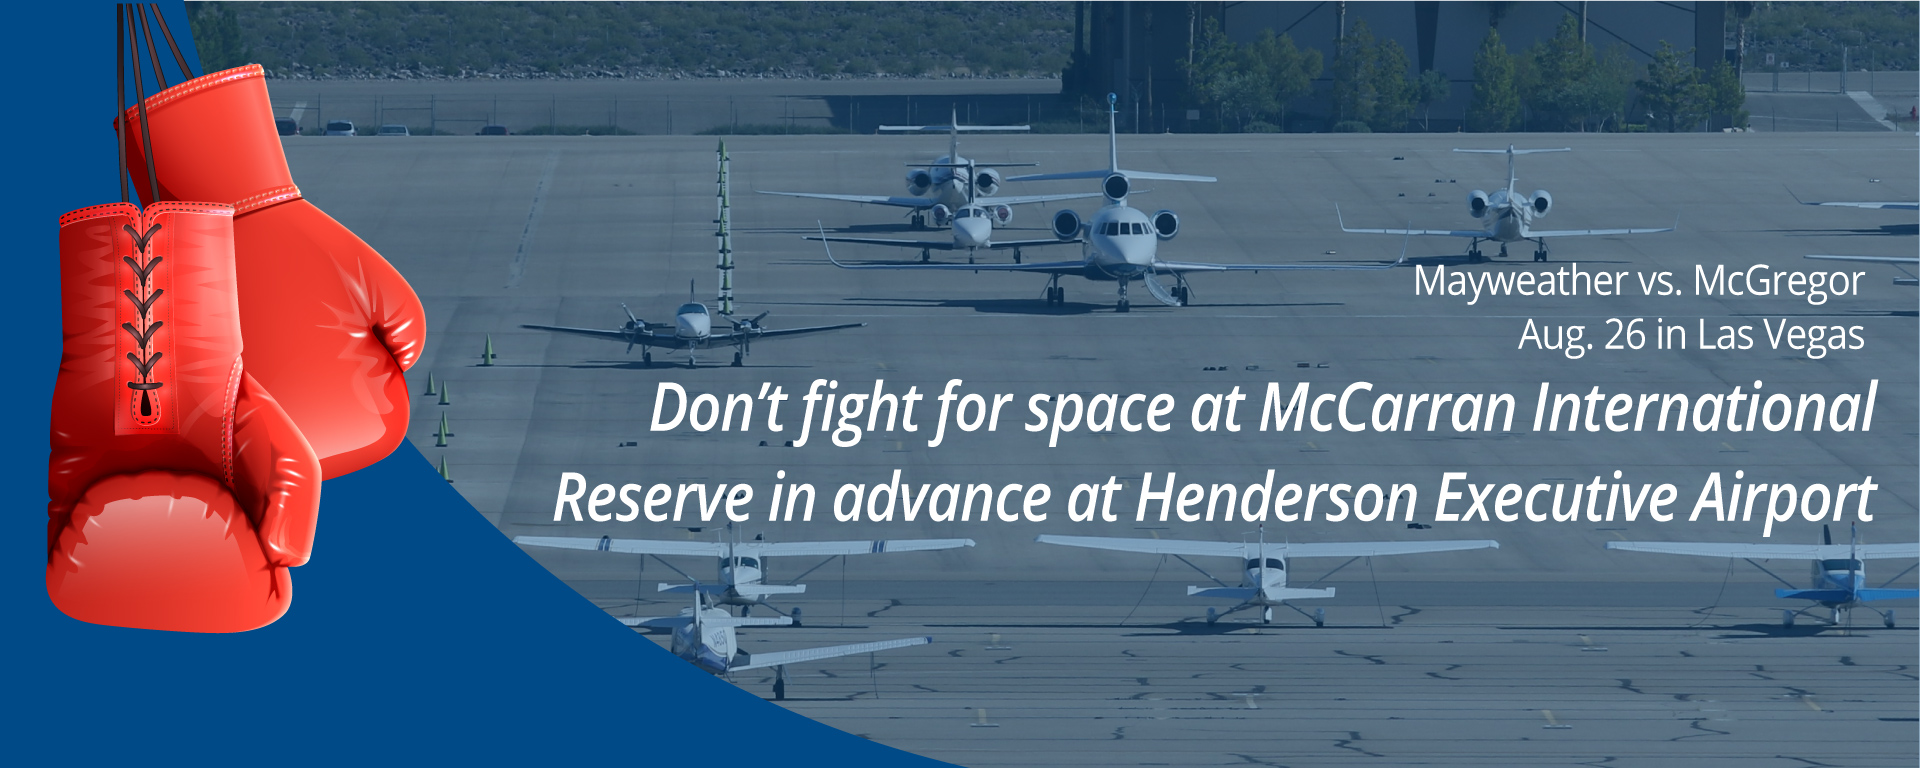 Henderson Executive Airport